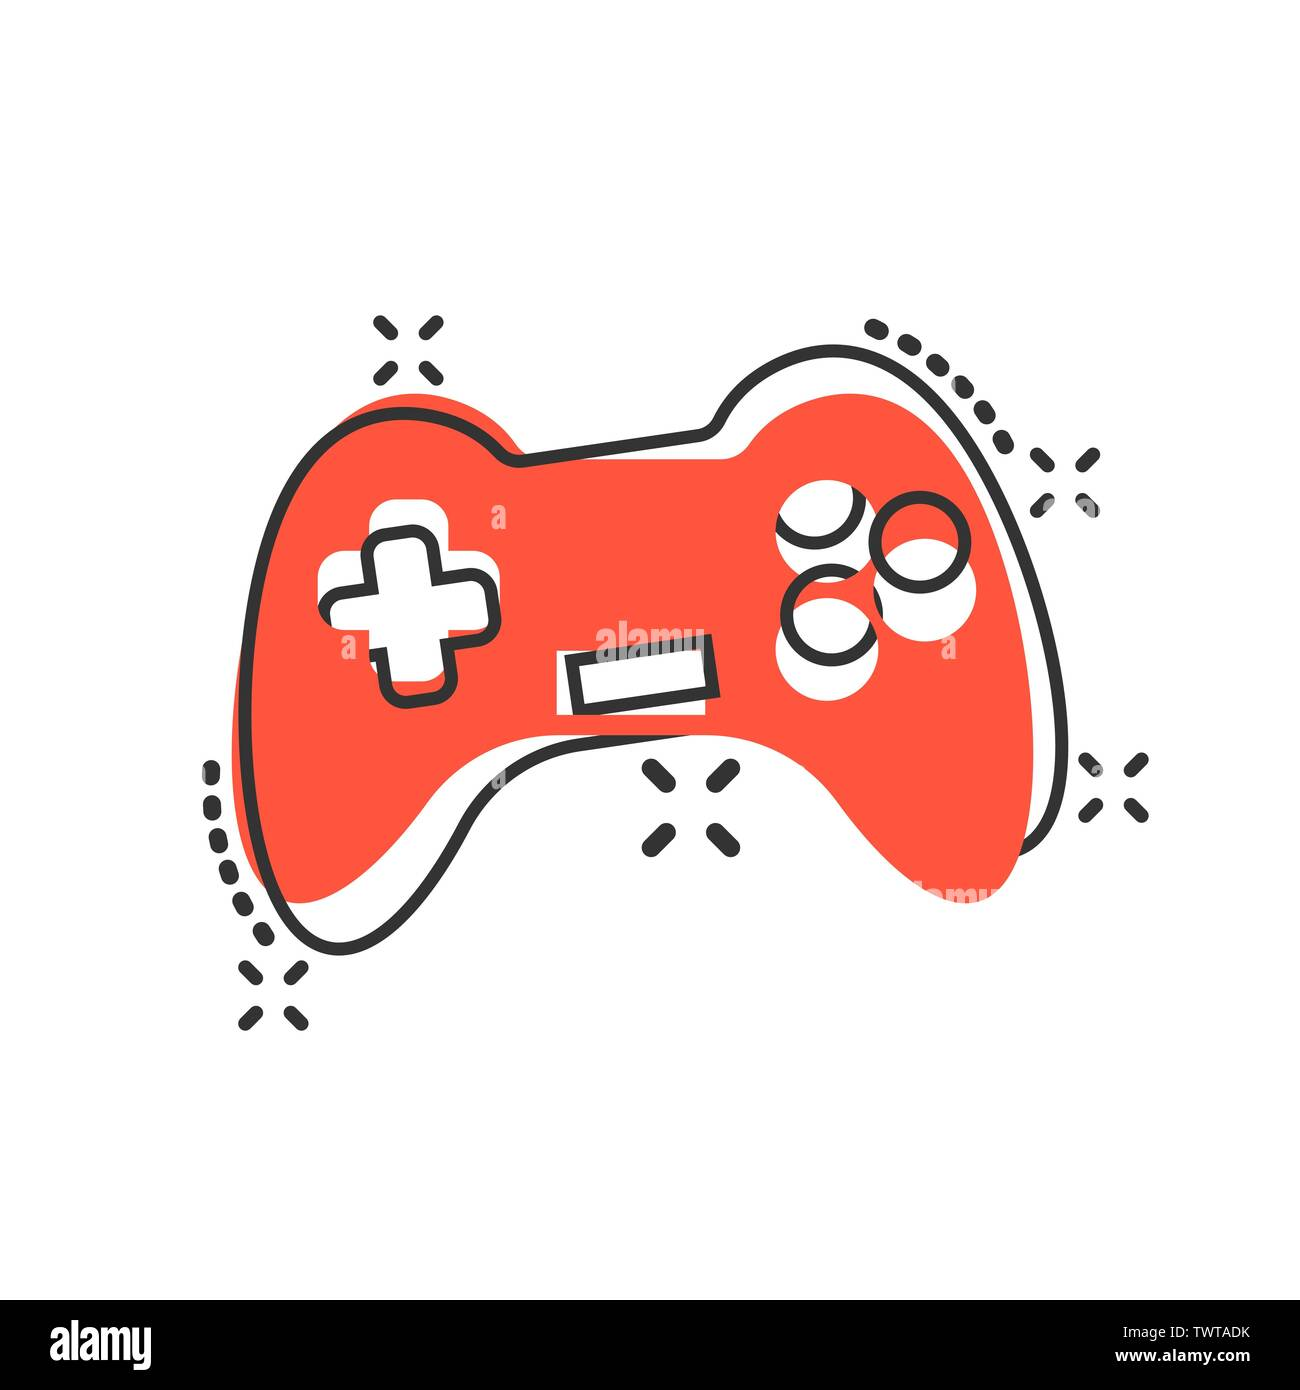 Joystick Sign Icon In Comic Style Gamepad Vector Cartoon Illustration On White Isolated Background Gaming Console Controller Business Concept Splash Stock Vector Image Art Alamy